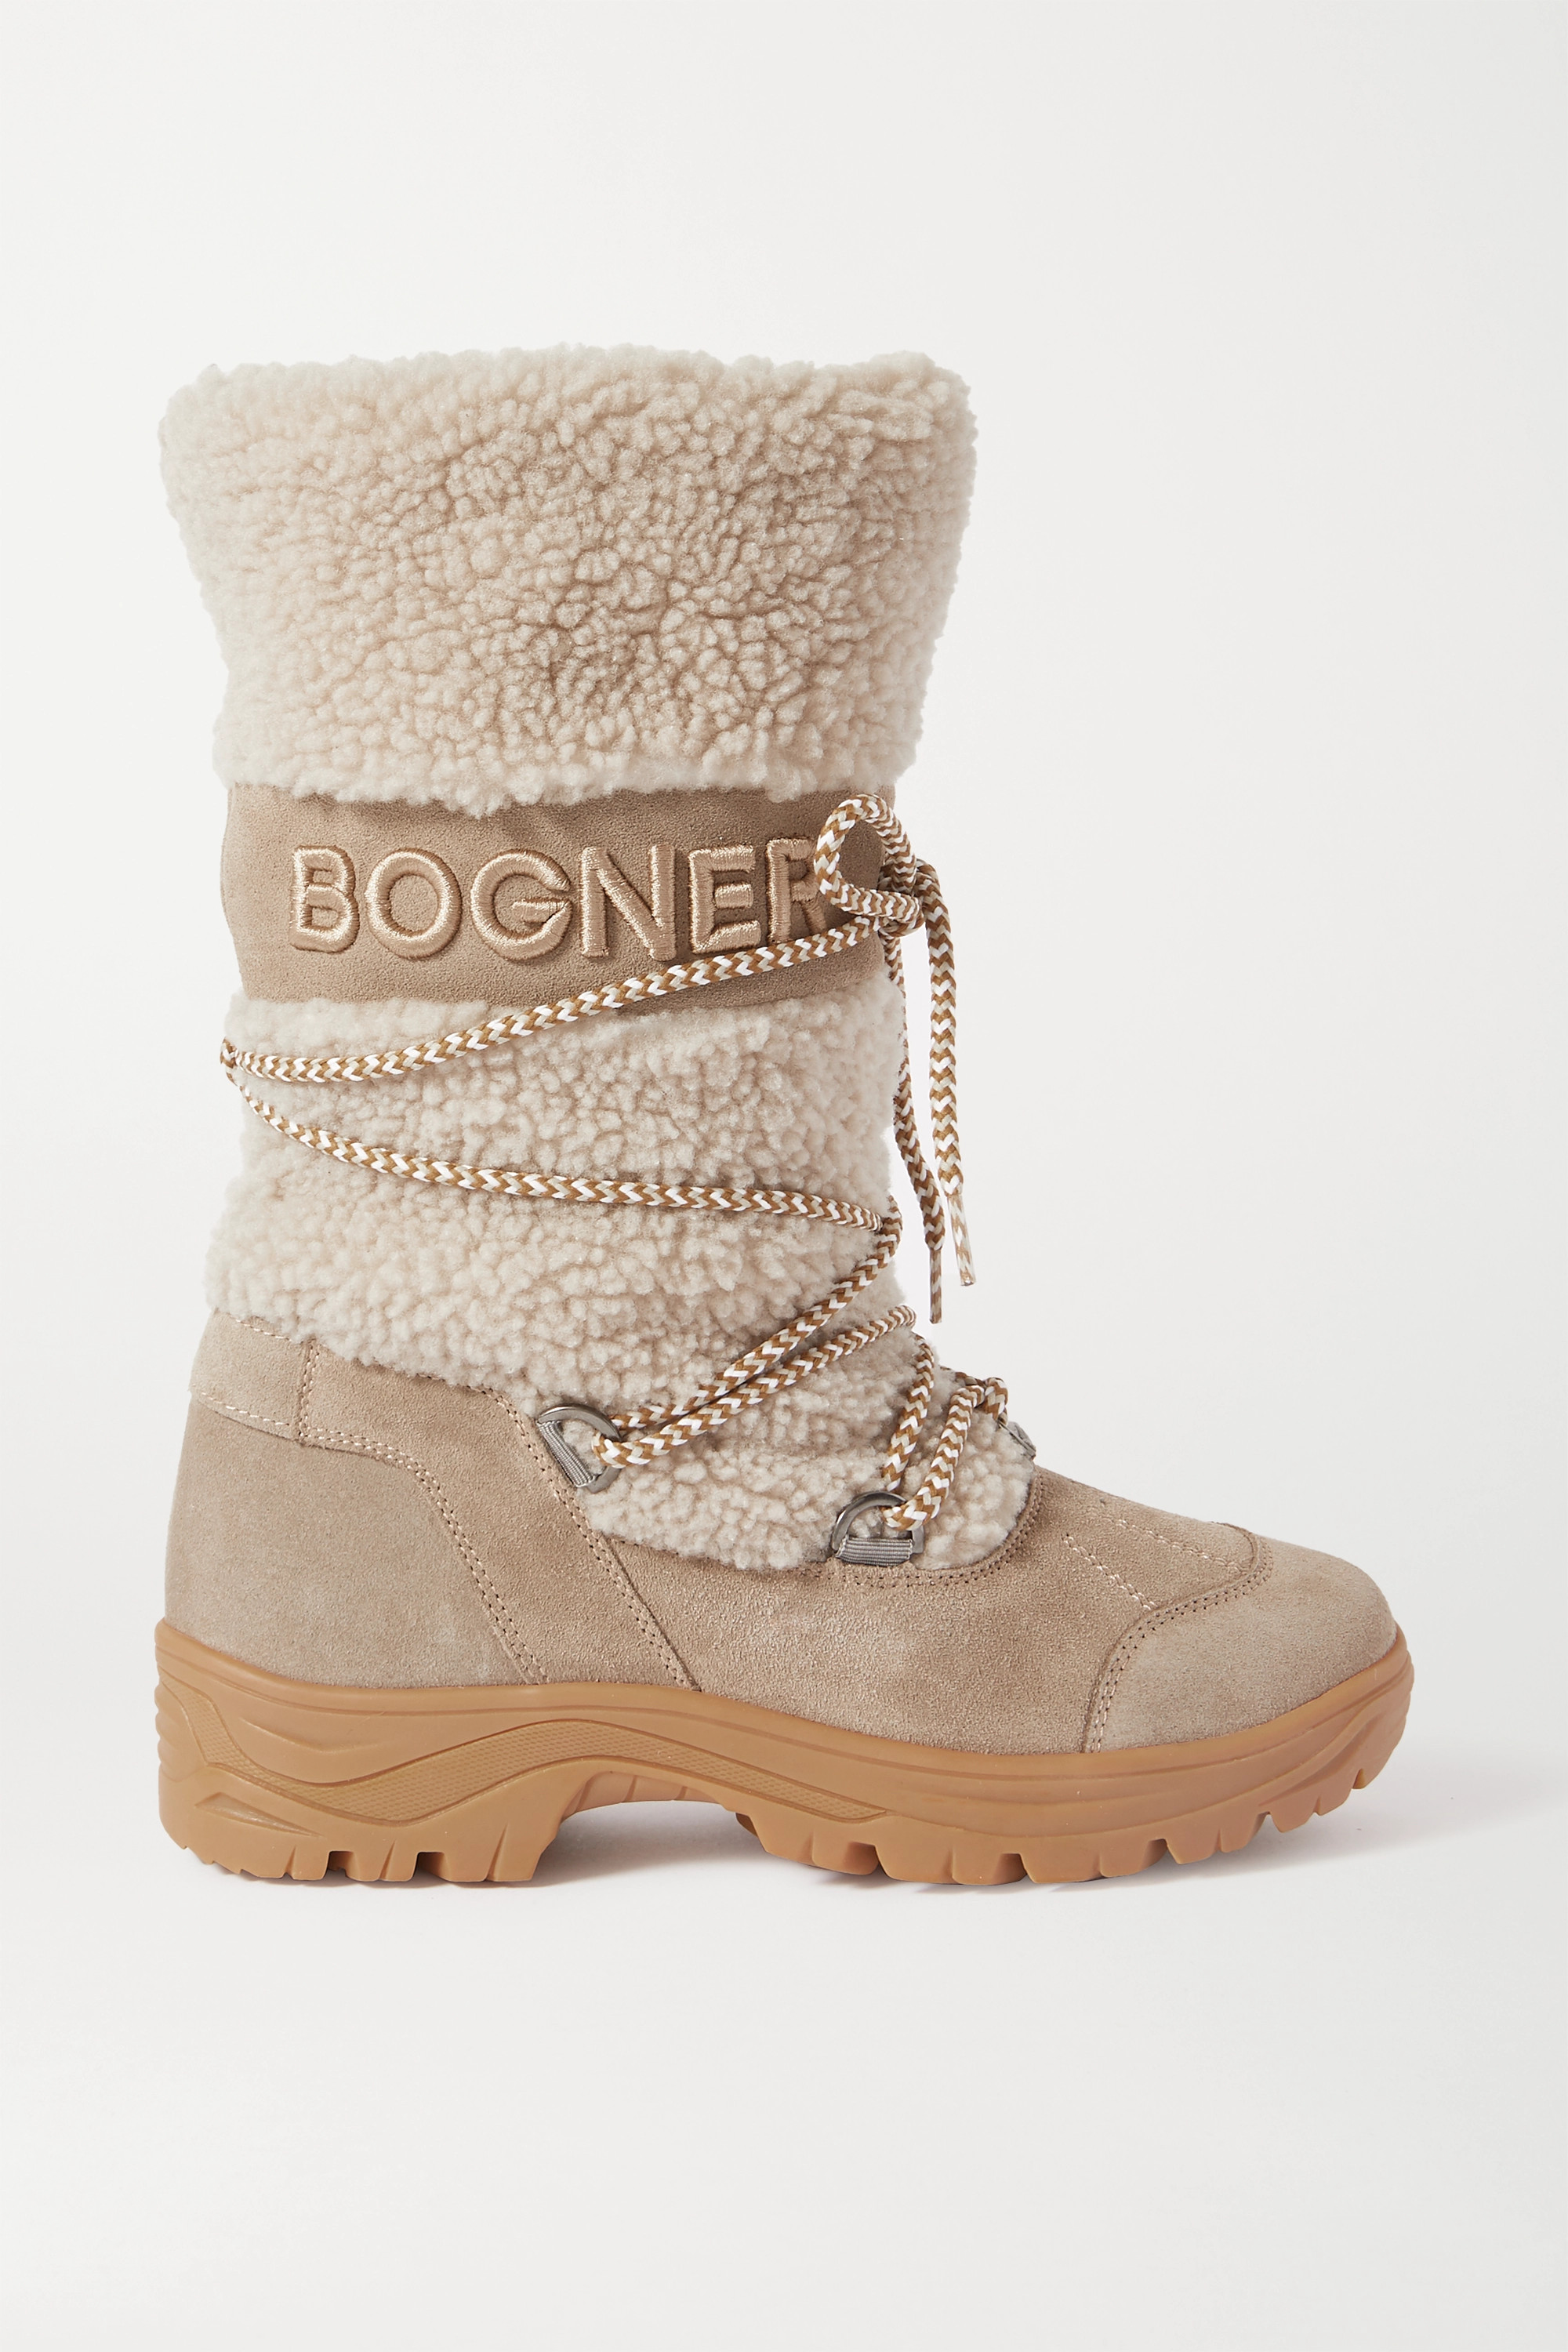 Bogner Alta Badia Embroidered Suede And Shearling Snow Boots In Gray